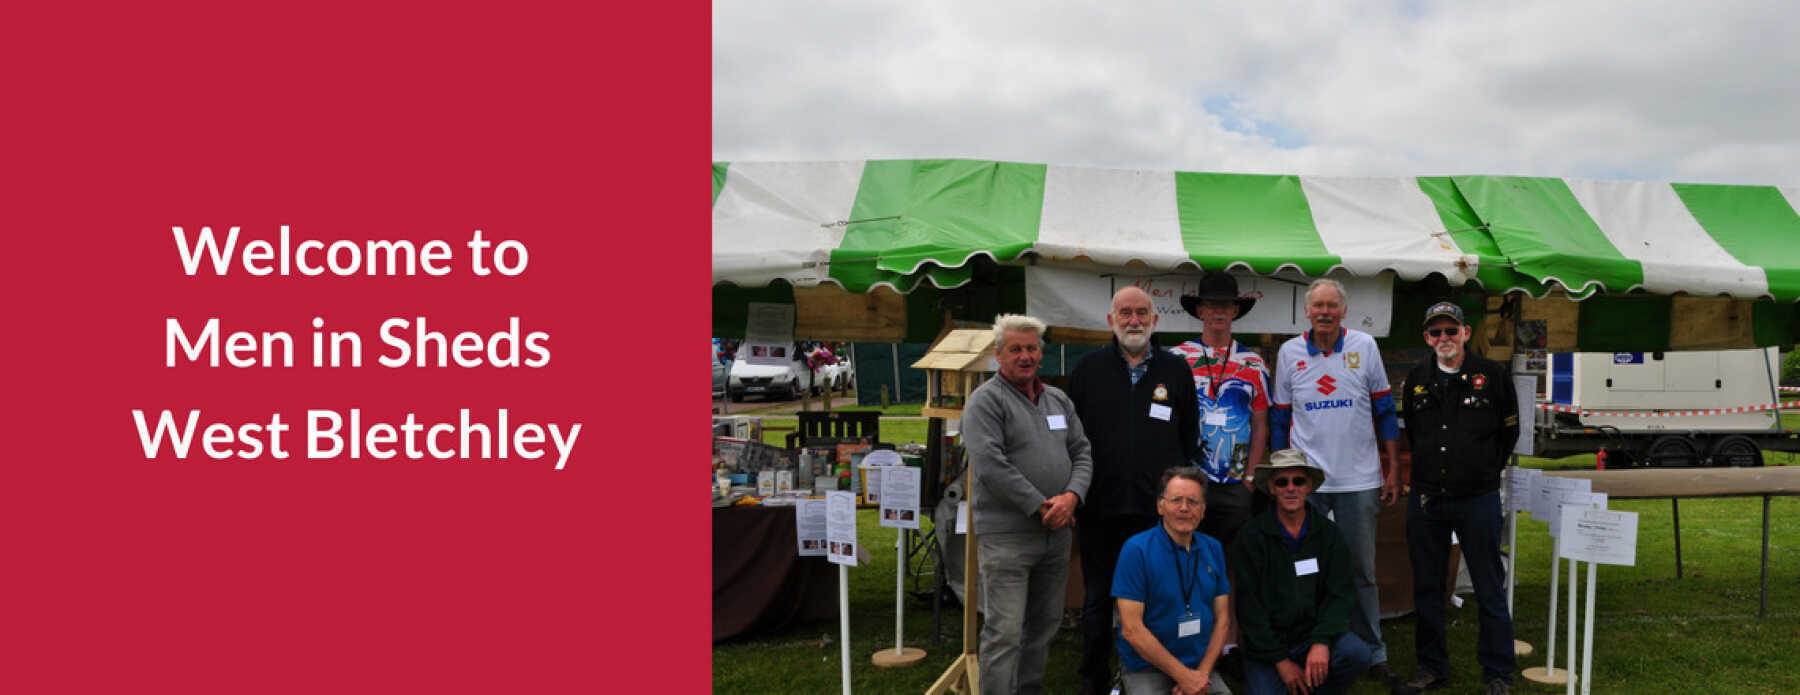 Featured Image for Men in Sheds West Bletchley